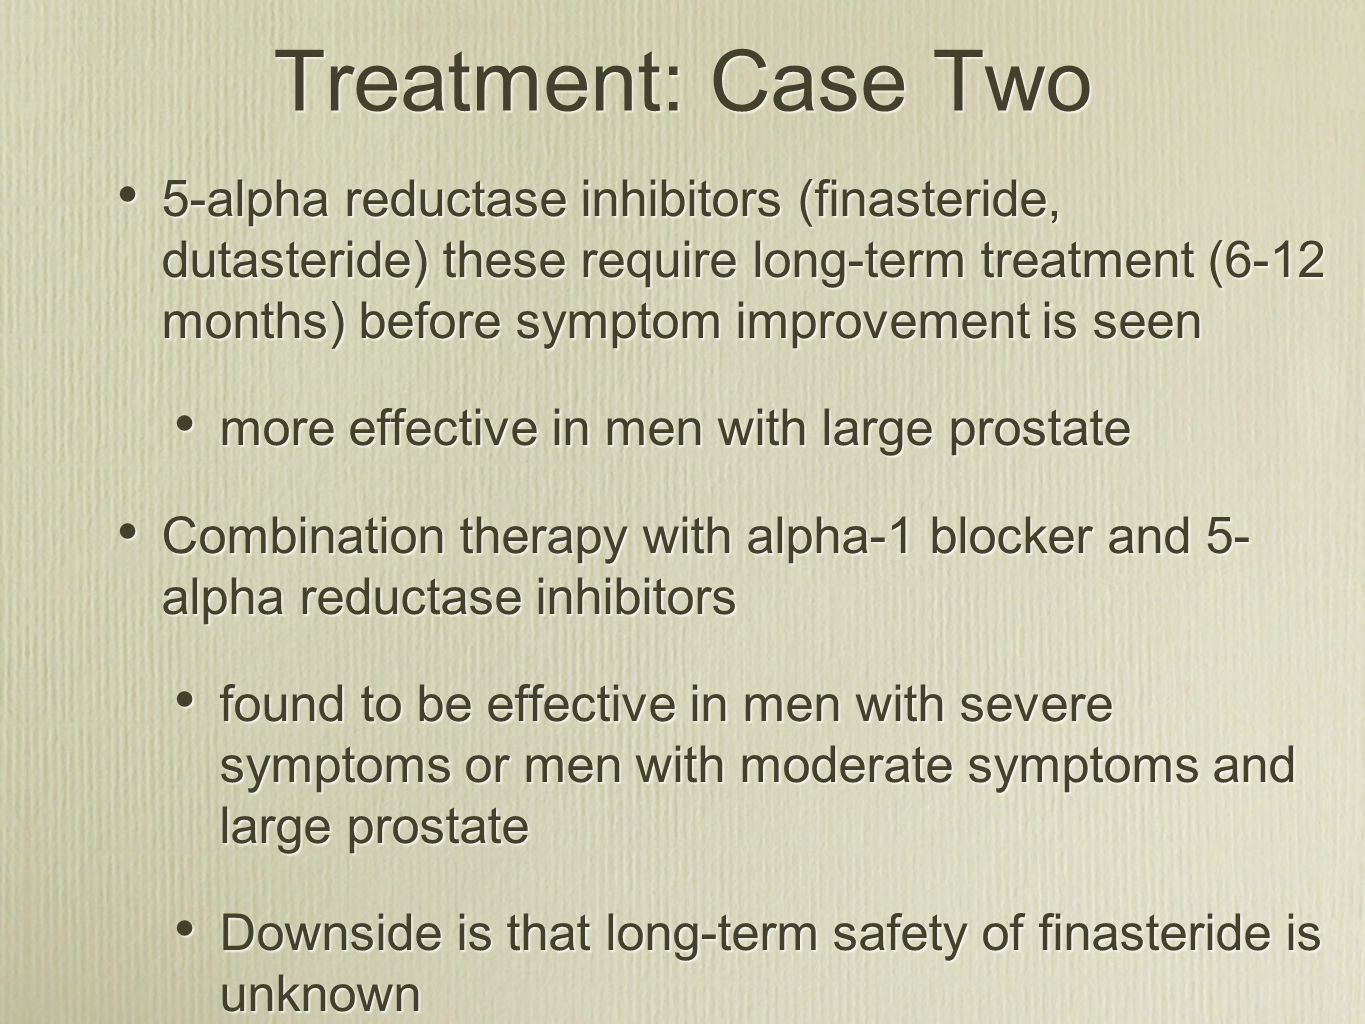 Treatment: Case Two